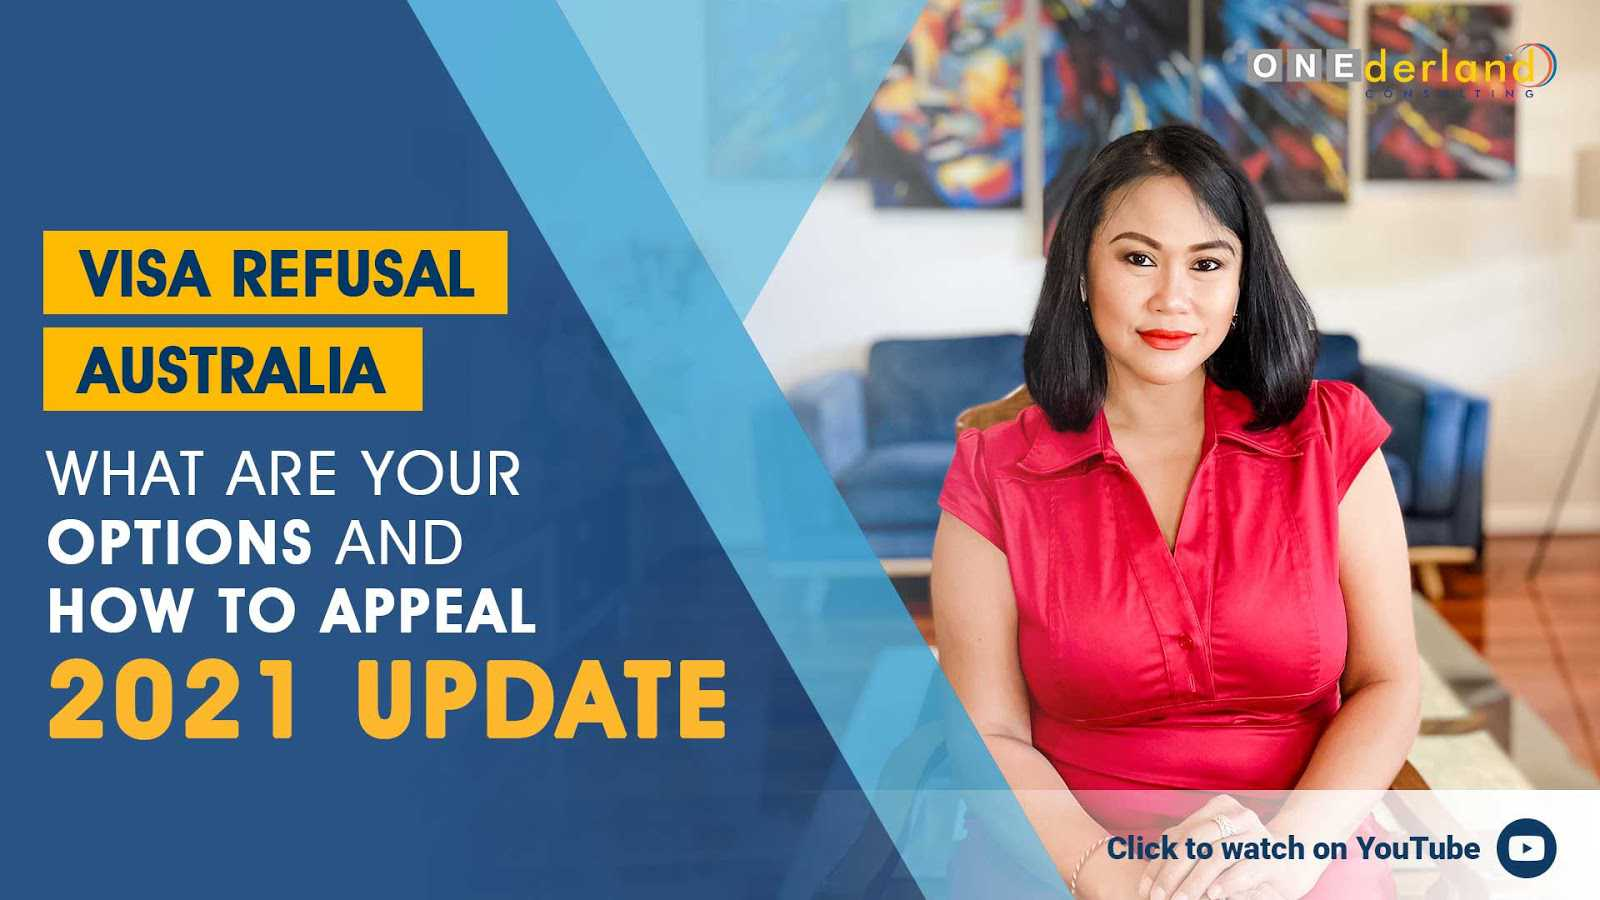 Australian Visa Application Refusal - What Are Your Options and How to Appeal 2021 (2)